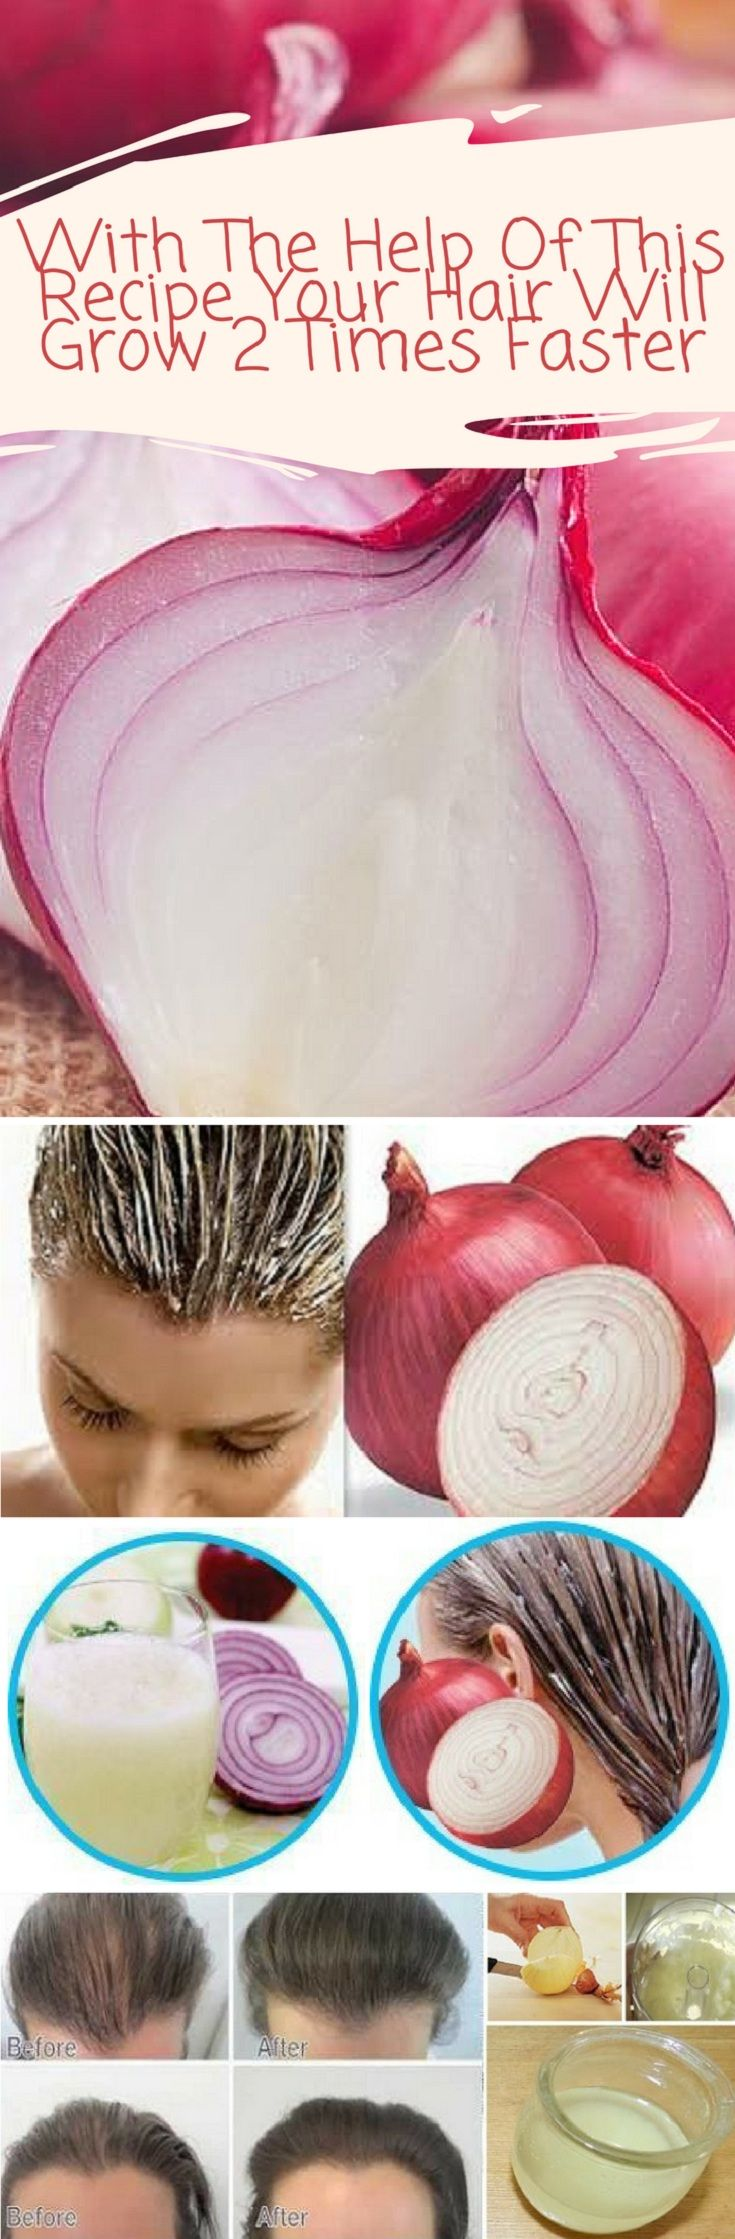 With The Help Of This Recipe Your Hair Will Grow 2… #Health #Wellness #Fitness #Tips #Food #Motivation #Remedies #Natural #Mental #Holistic #Skin #Woman's #Facts #Care #Lifestyle #Detox #Beauty #Diet #Body #Nutricion #Skincare #NaturalTreatments #HealthyLifestyle